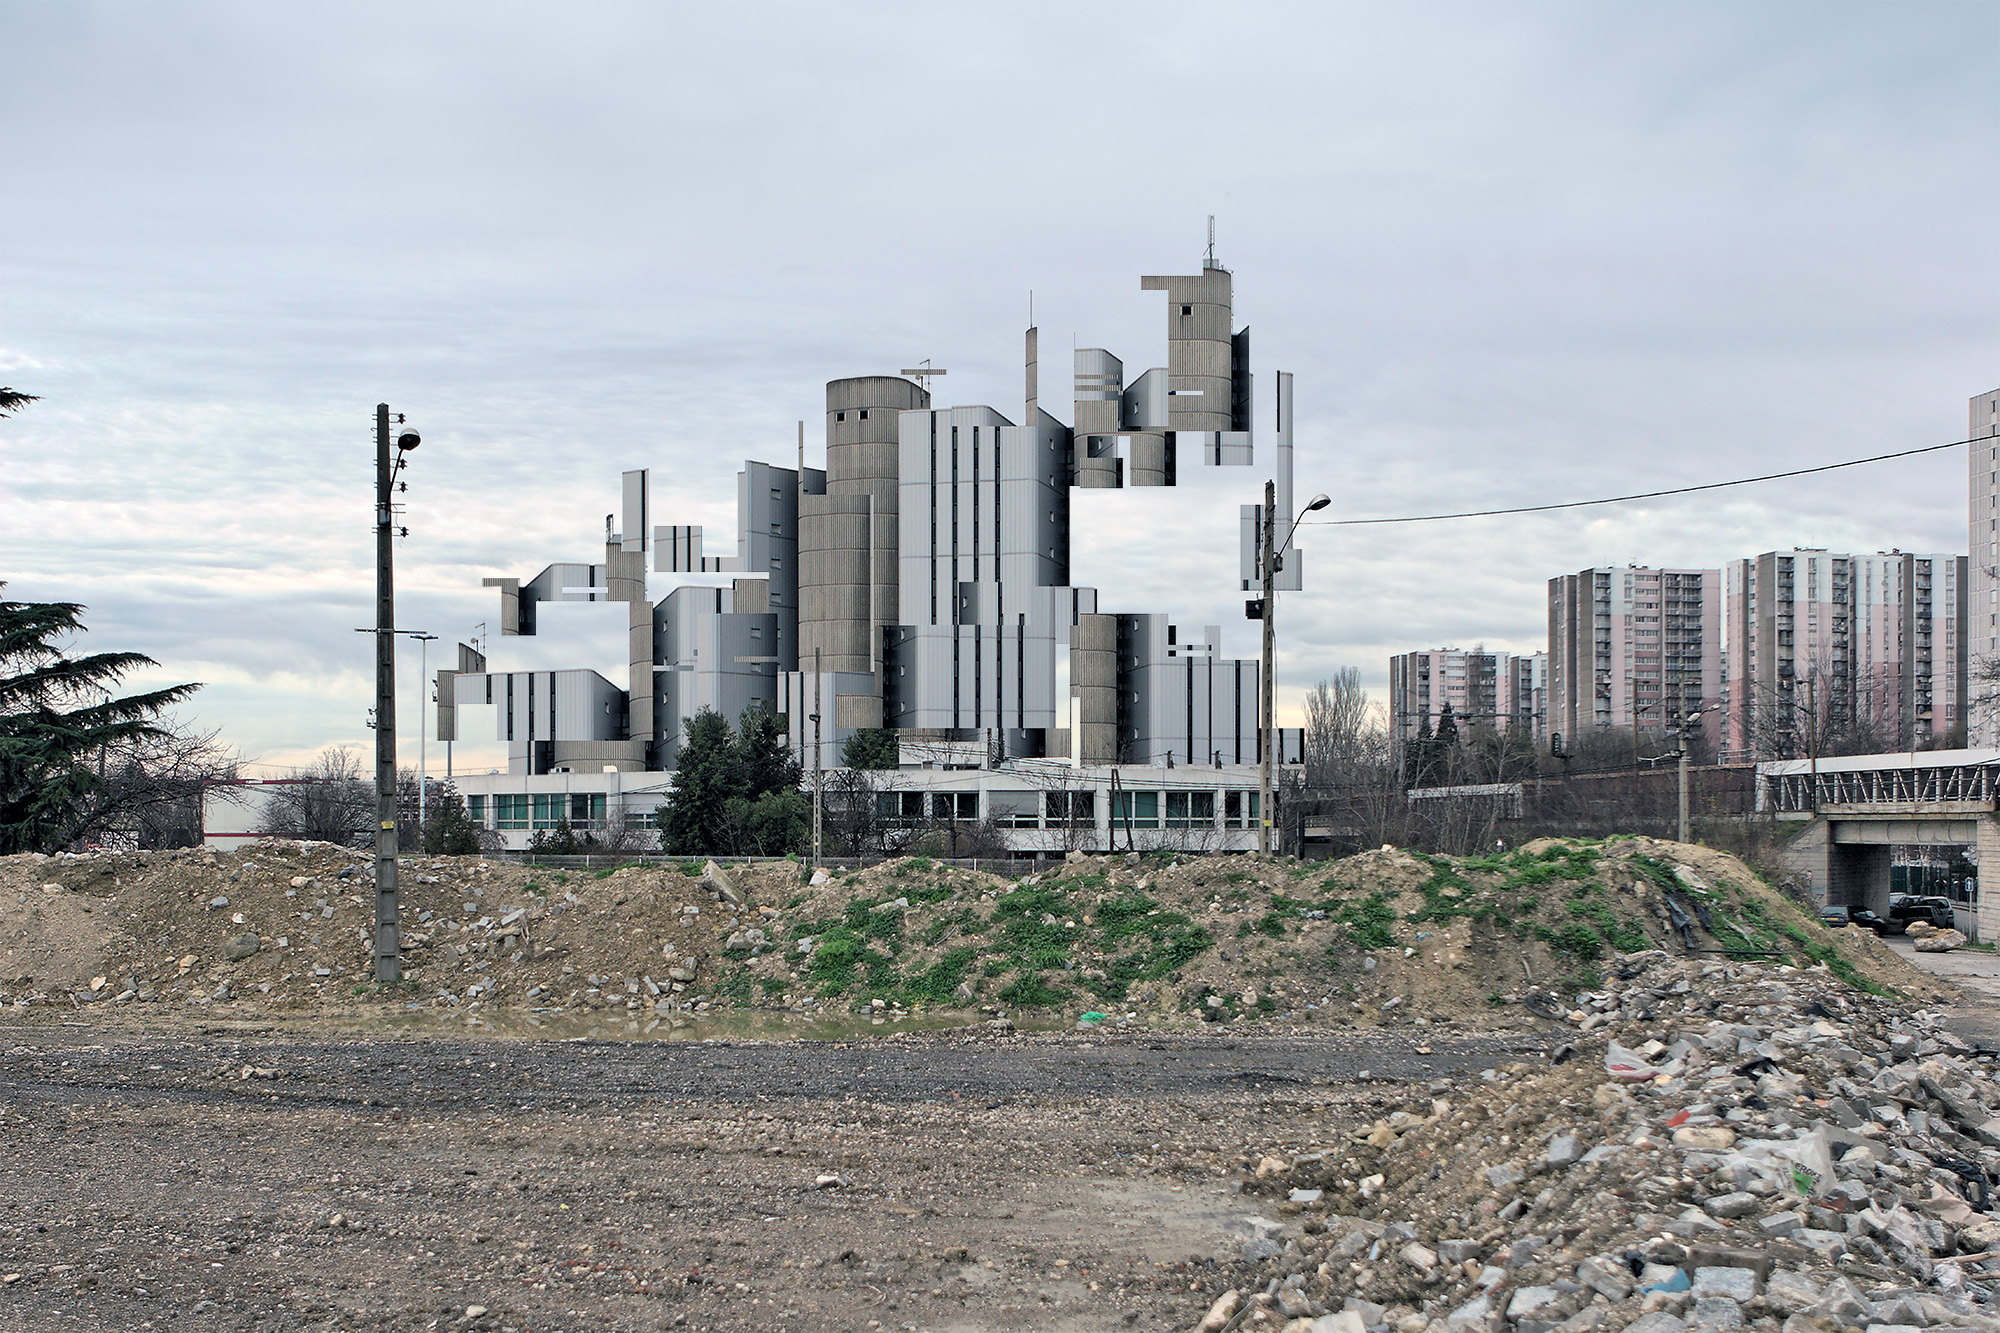 Untitled (Anarchitecture from WYSI*not*WYG project by Olivier Ratsi)